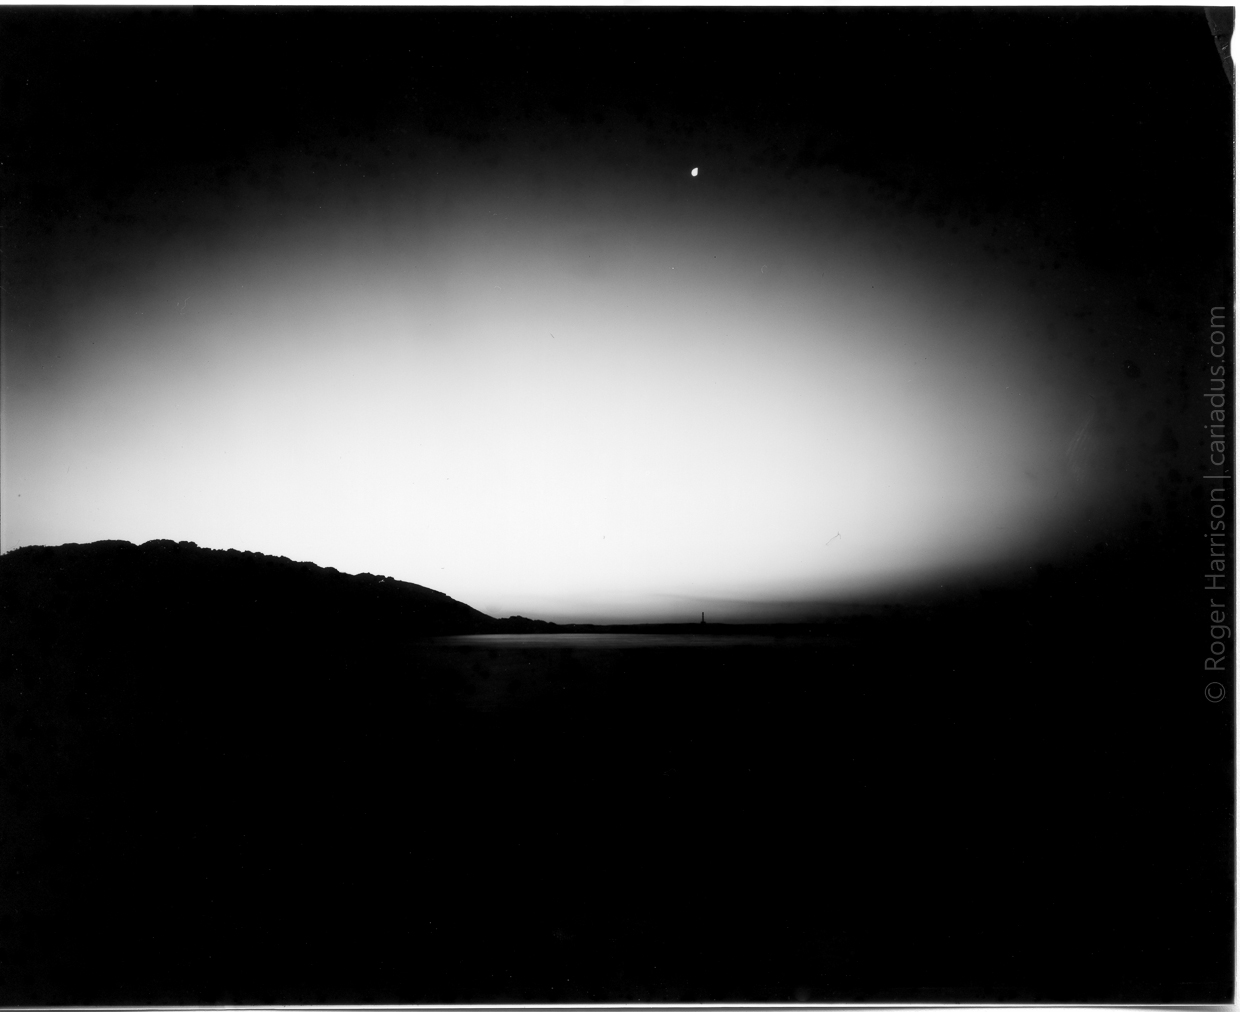 Watchtower Bay | Crown Graphic 5x4 | Imago Direct Positive Paper | Roger Harrison